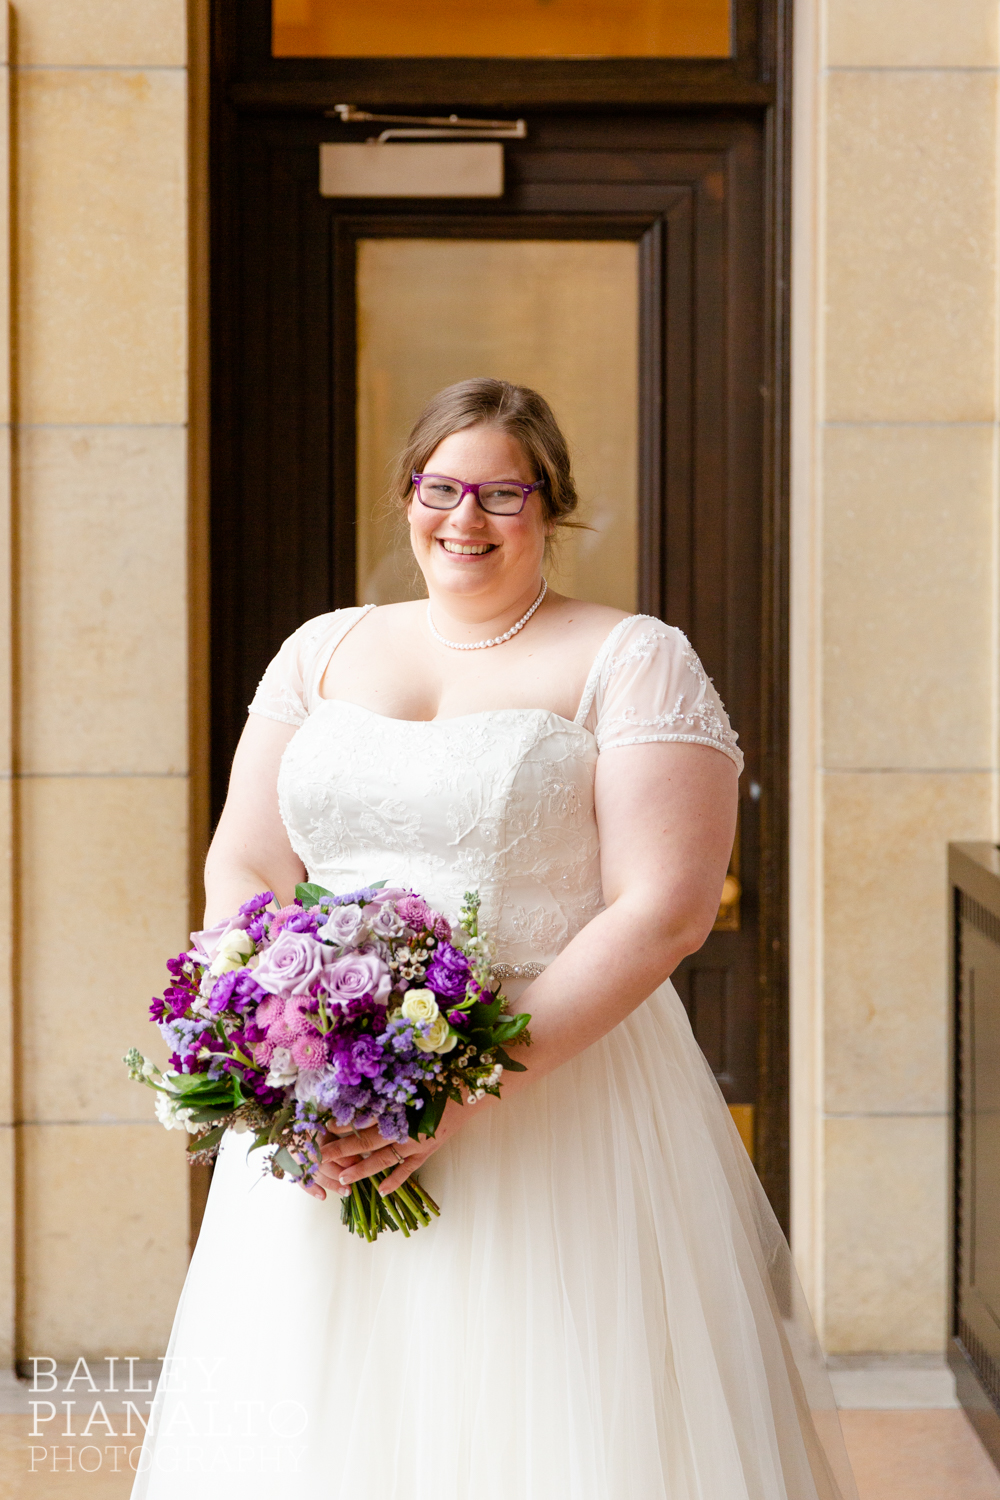 Bride Portraits at Purple & Gray Down-to-Earth Spring Wedding  | Union Station | Kansas City, MO